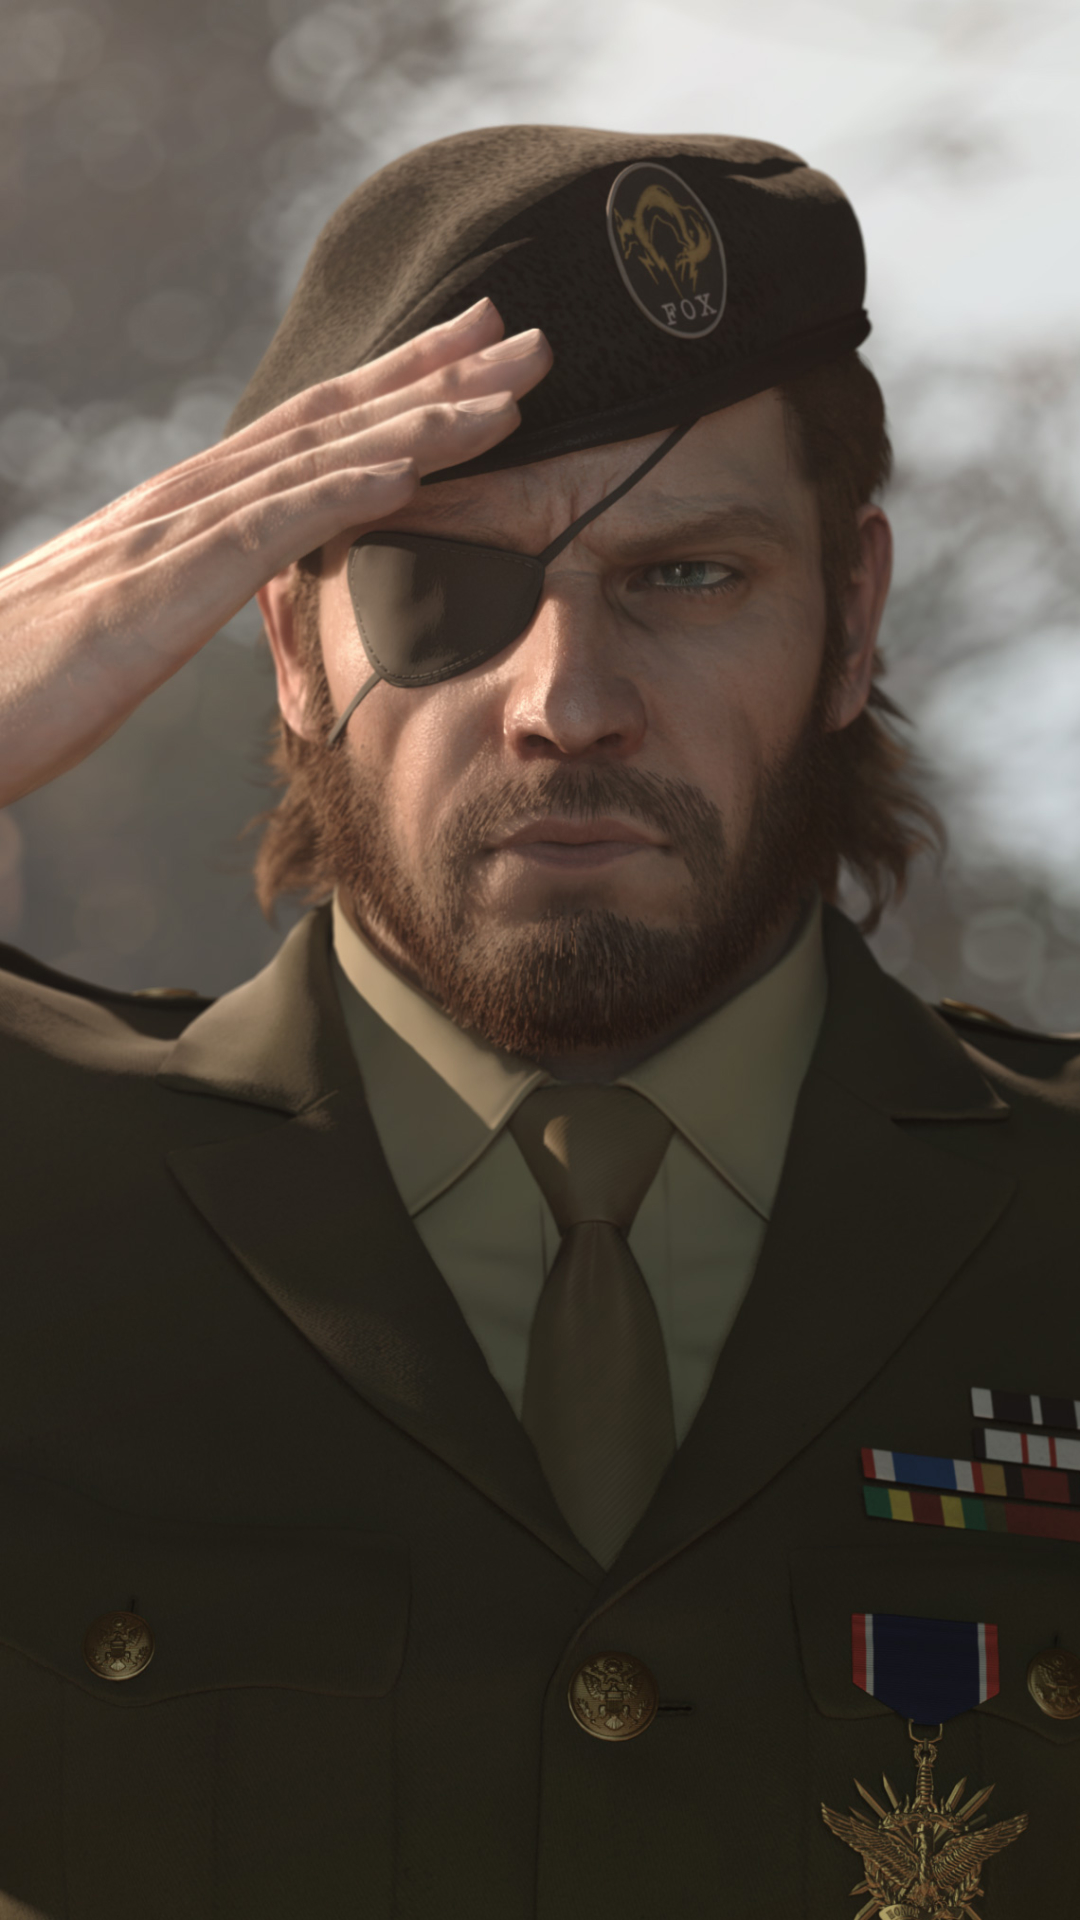 Video Game Metal Gear Solid 3 Snake Eater 1080x1920